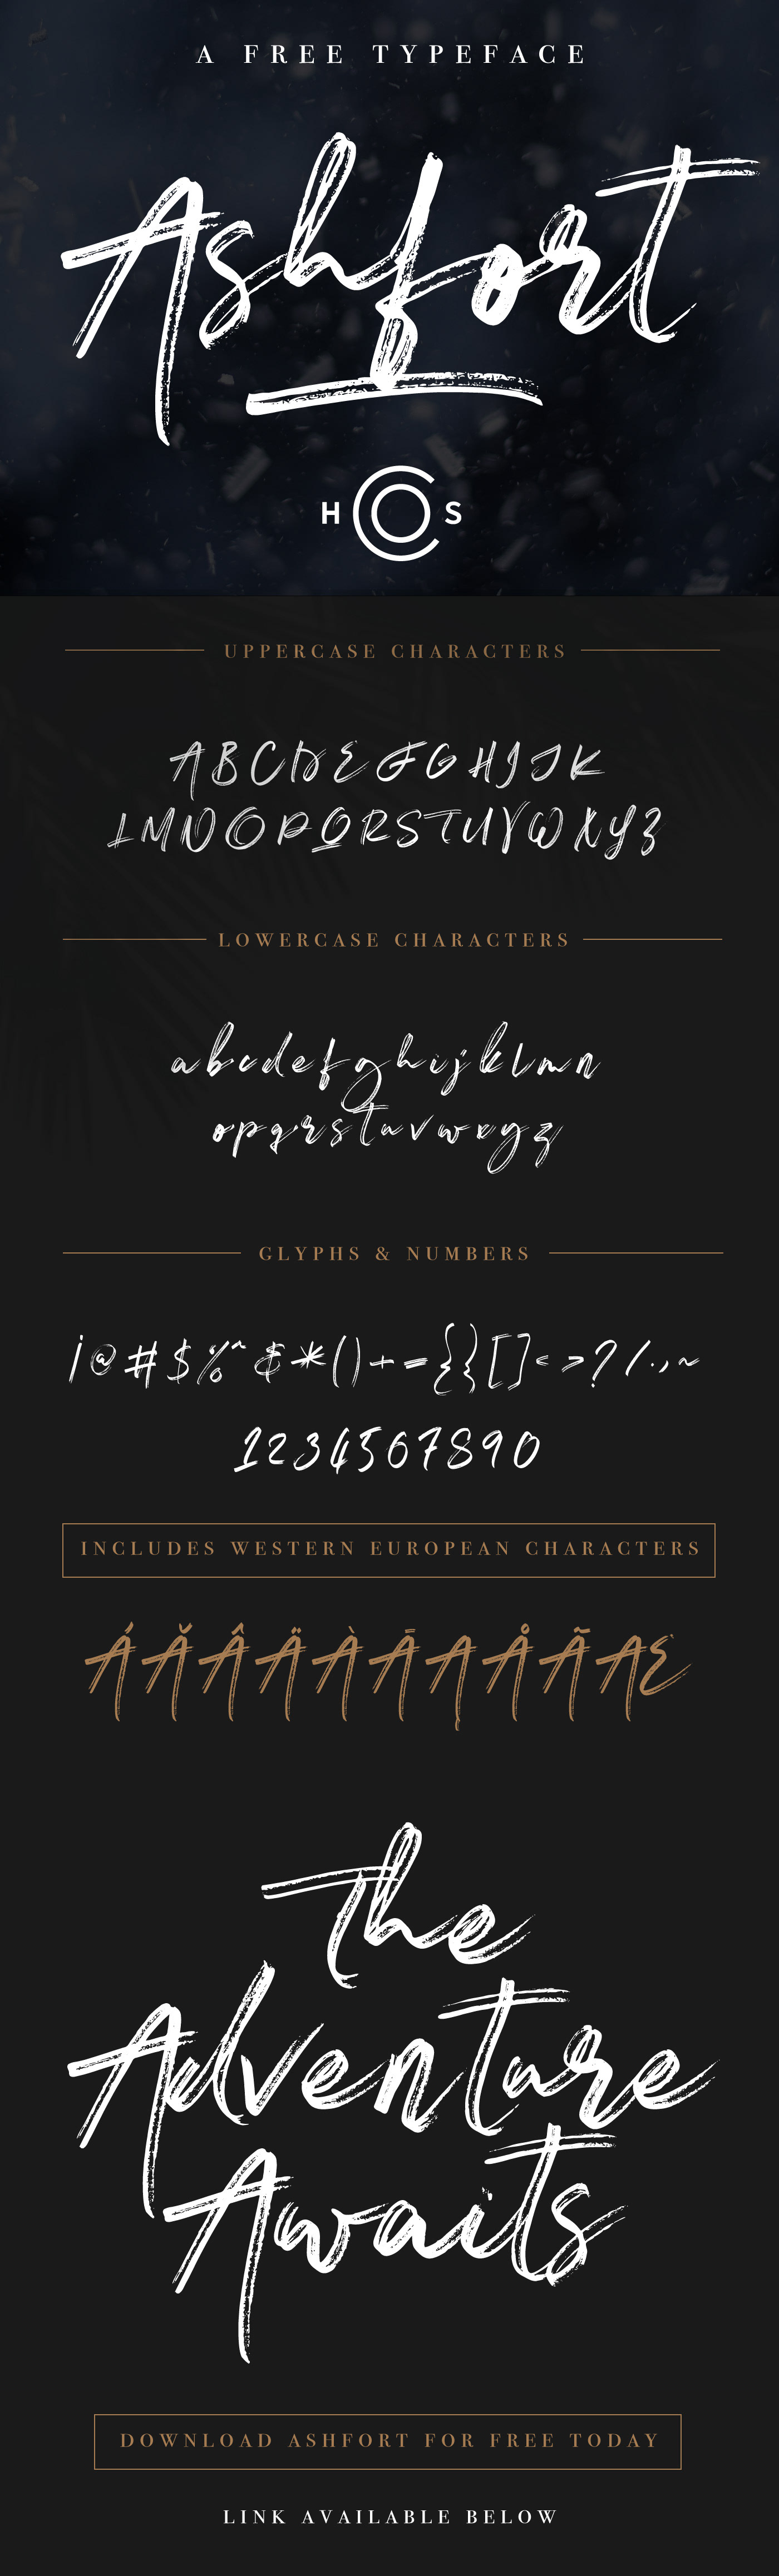 Free font free fonts free typeface free brush font free hand lettering free free download Free Script Font free signature free logo